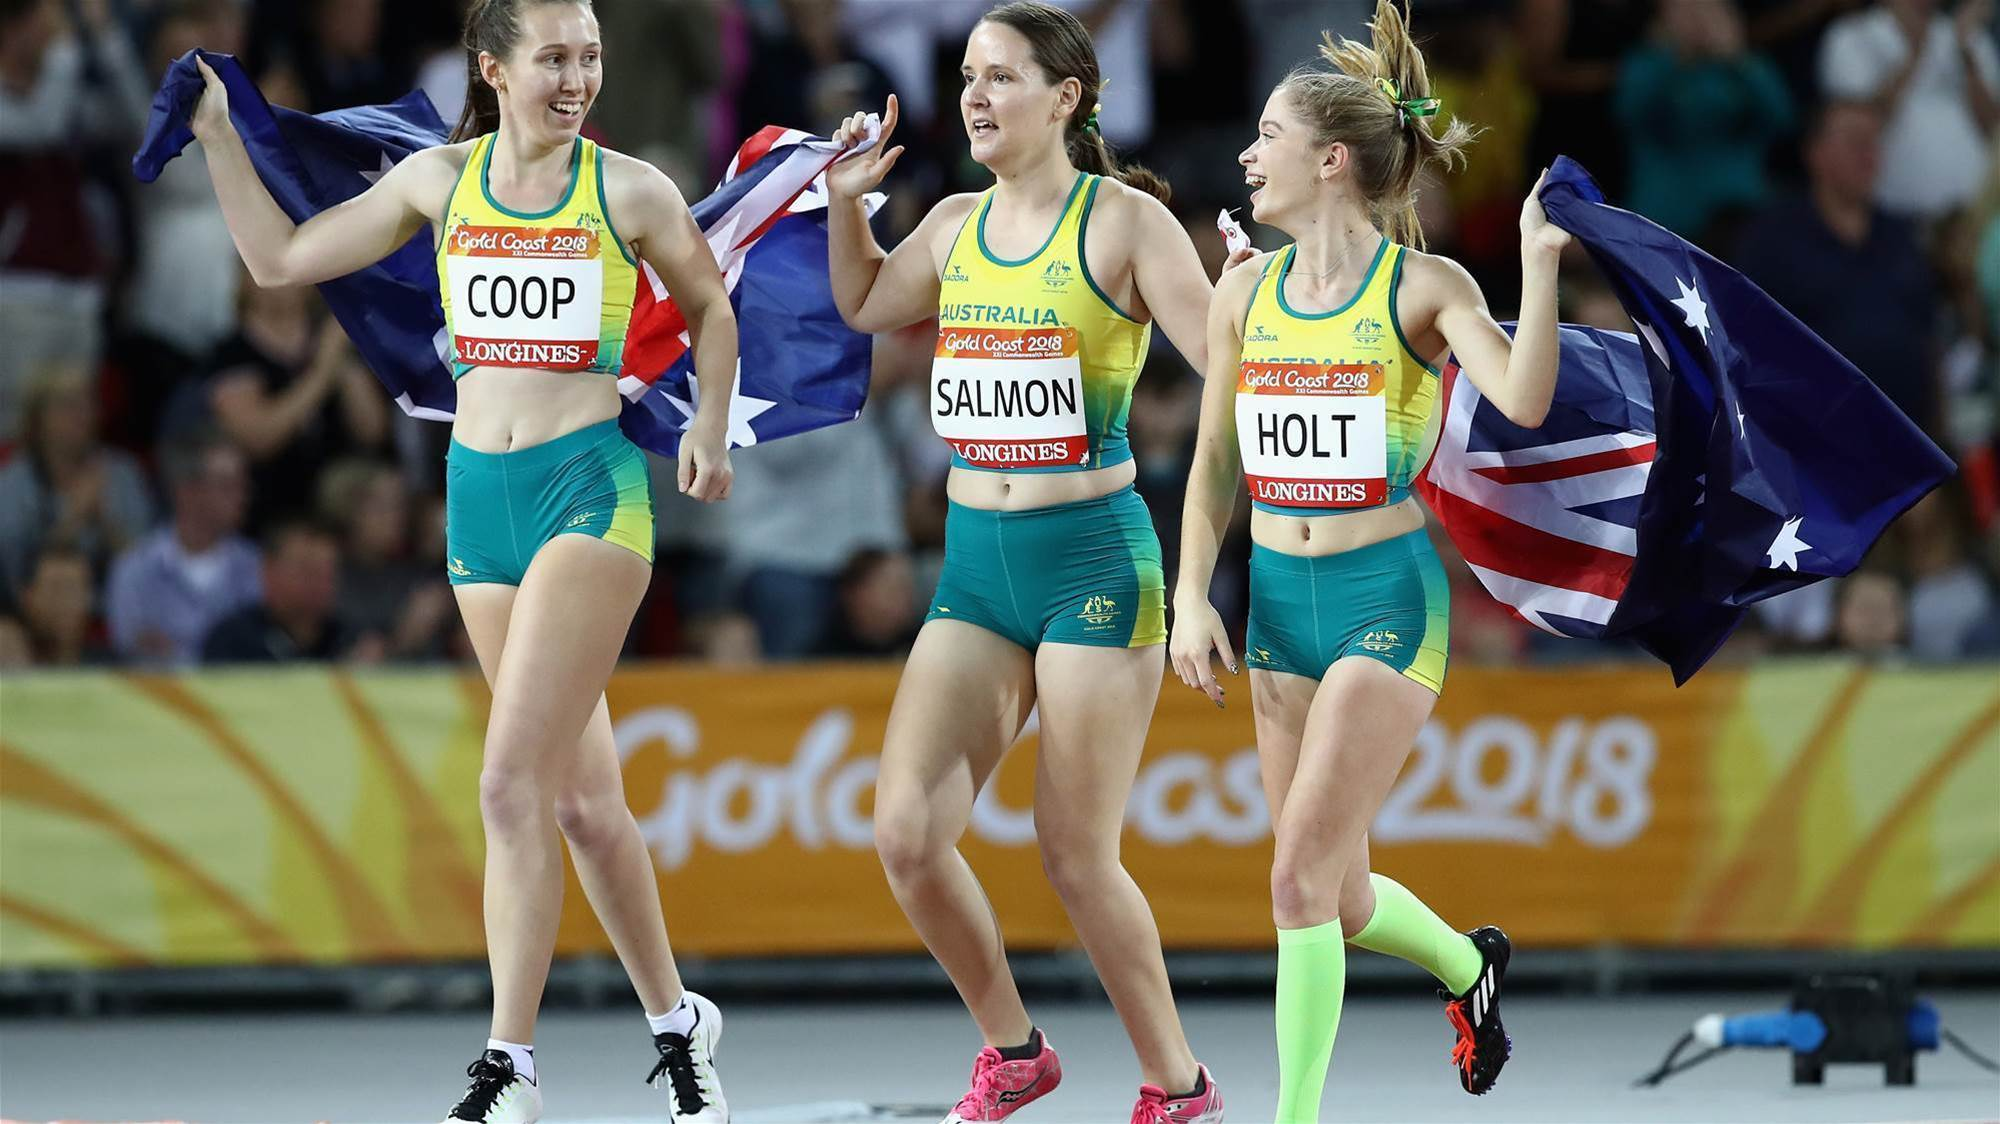 GALLERY| Commonwealth Games Day 7